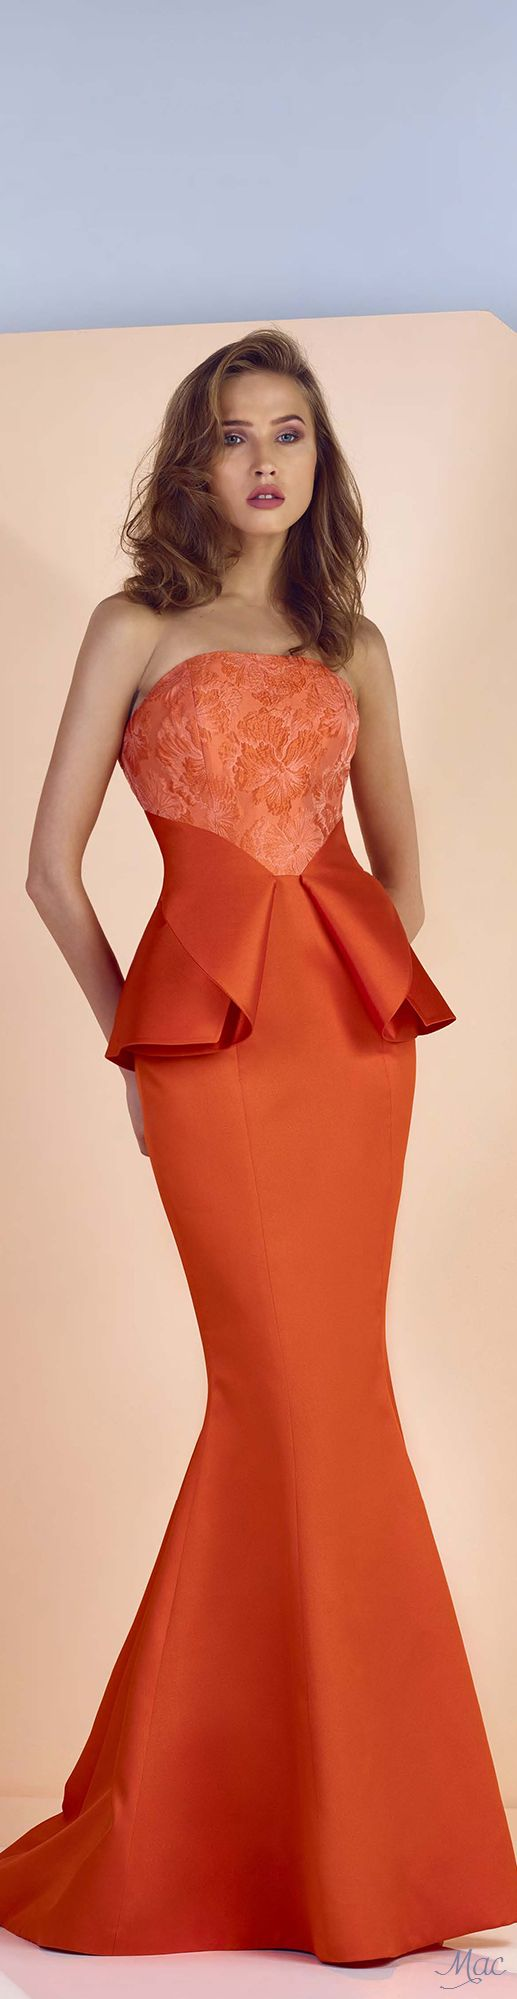 Spring 2017 Ready-to-Wear Divina by Edward Arsouni